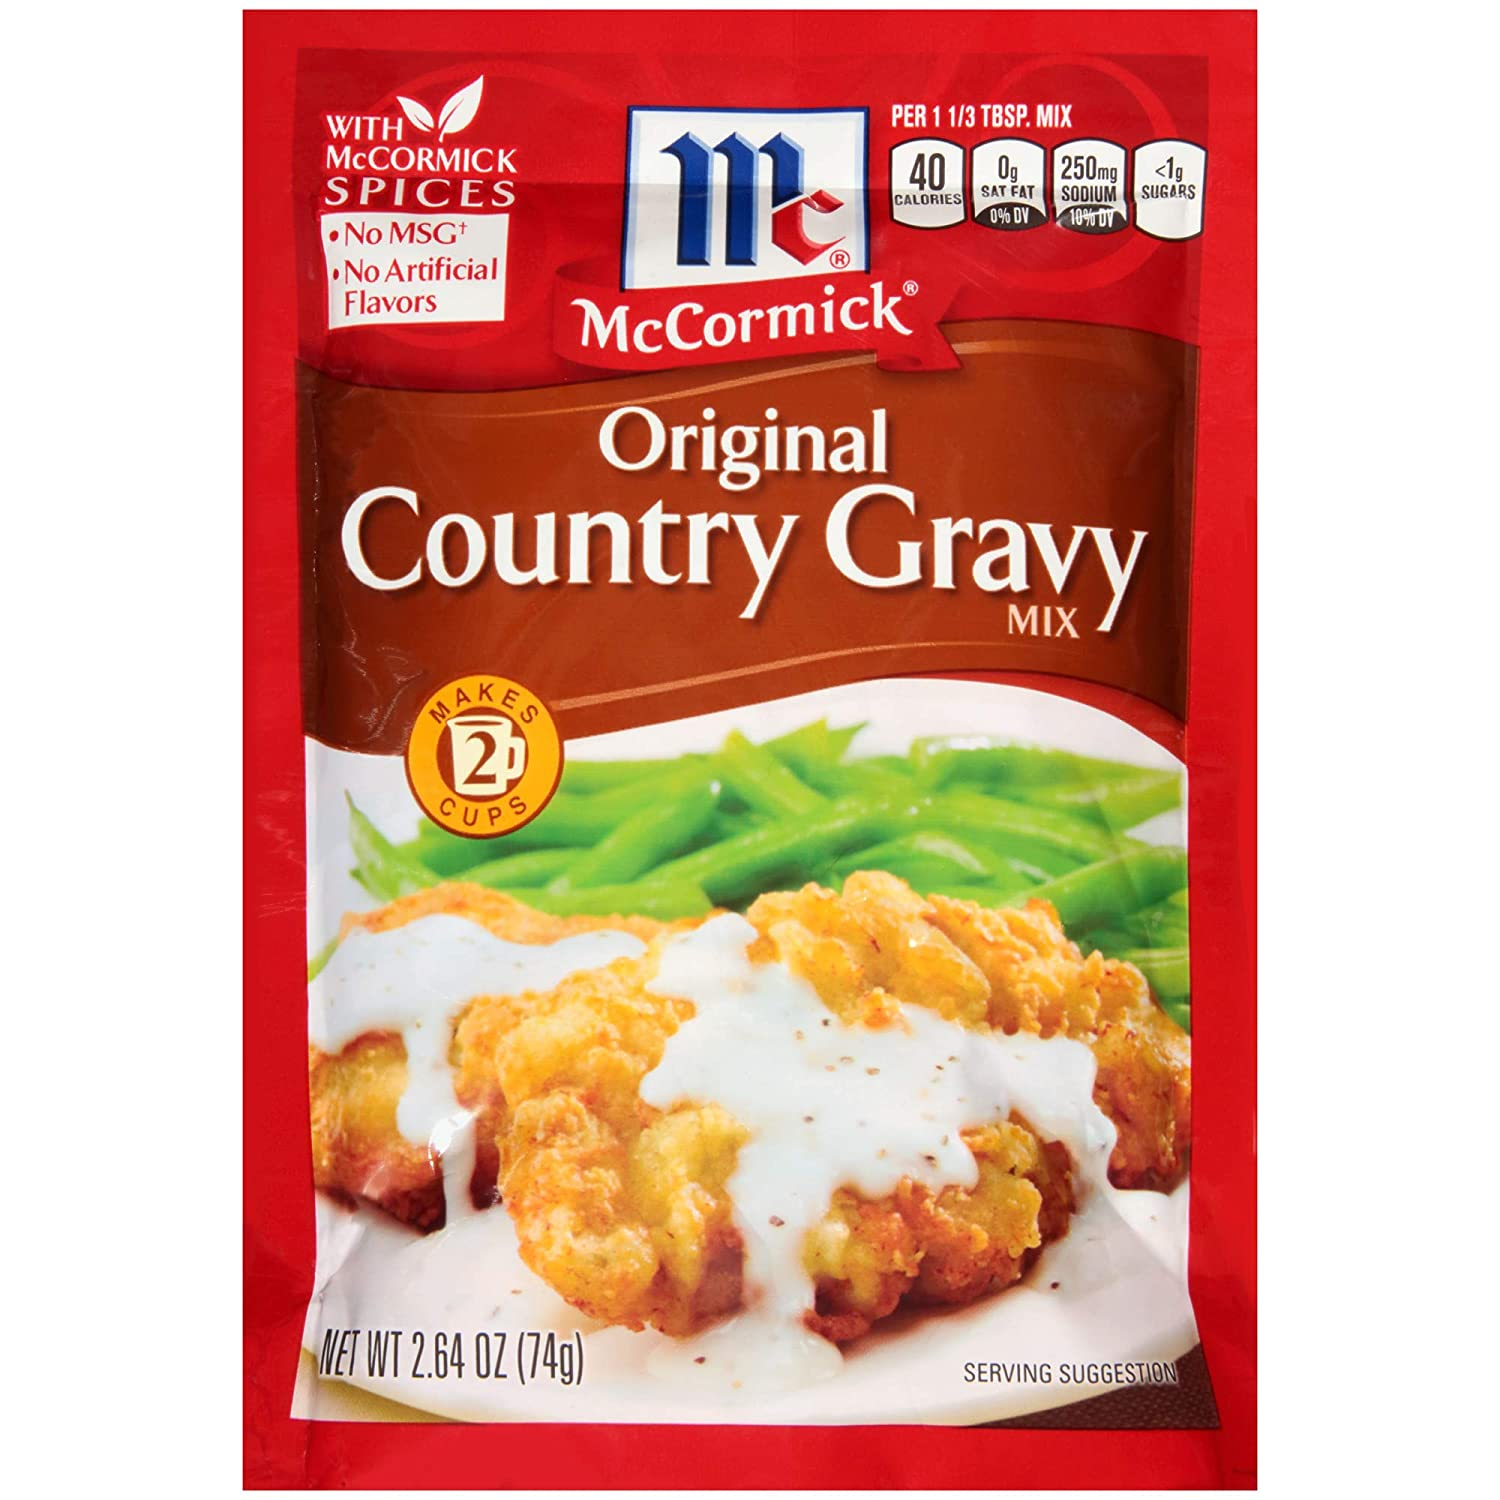 McCormick Original Country Gravy Mix (Pack of 4) 2.64 oz Packets